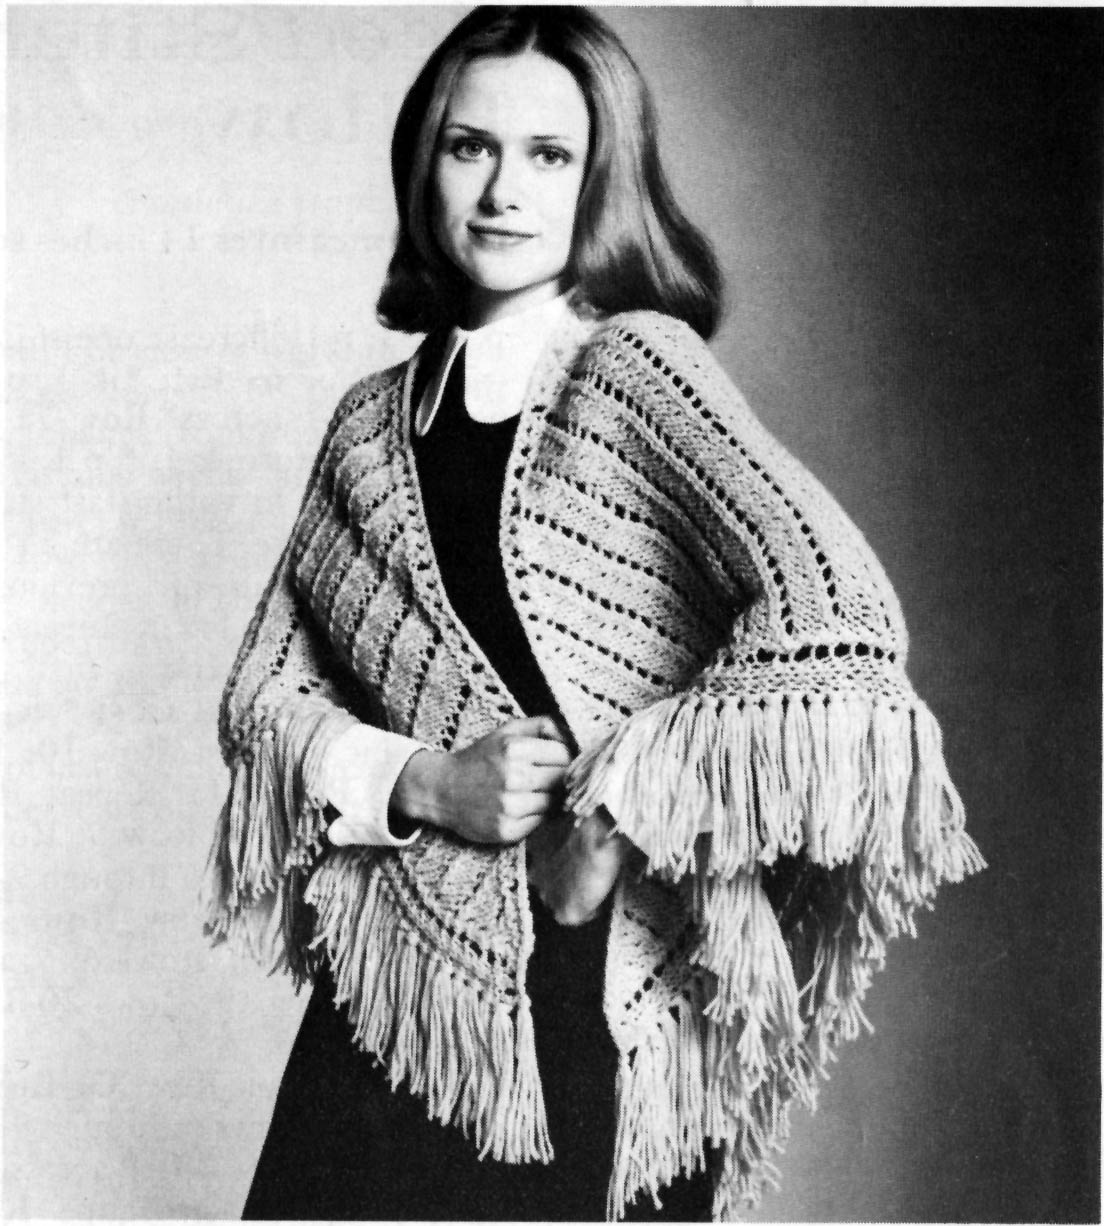 Free Knitting Patterns For Vintage Shawls : The Vintage Pattern Files: 1960s Knitting - Kate Shawl